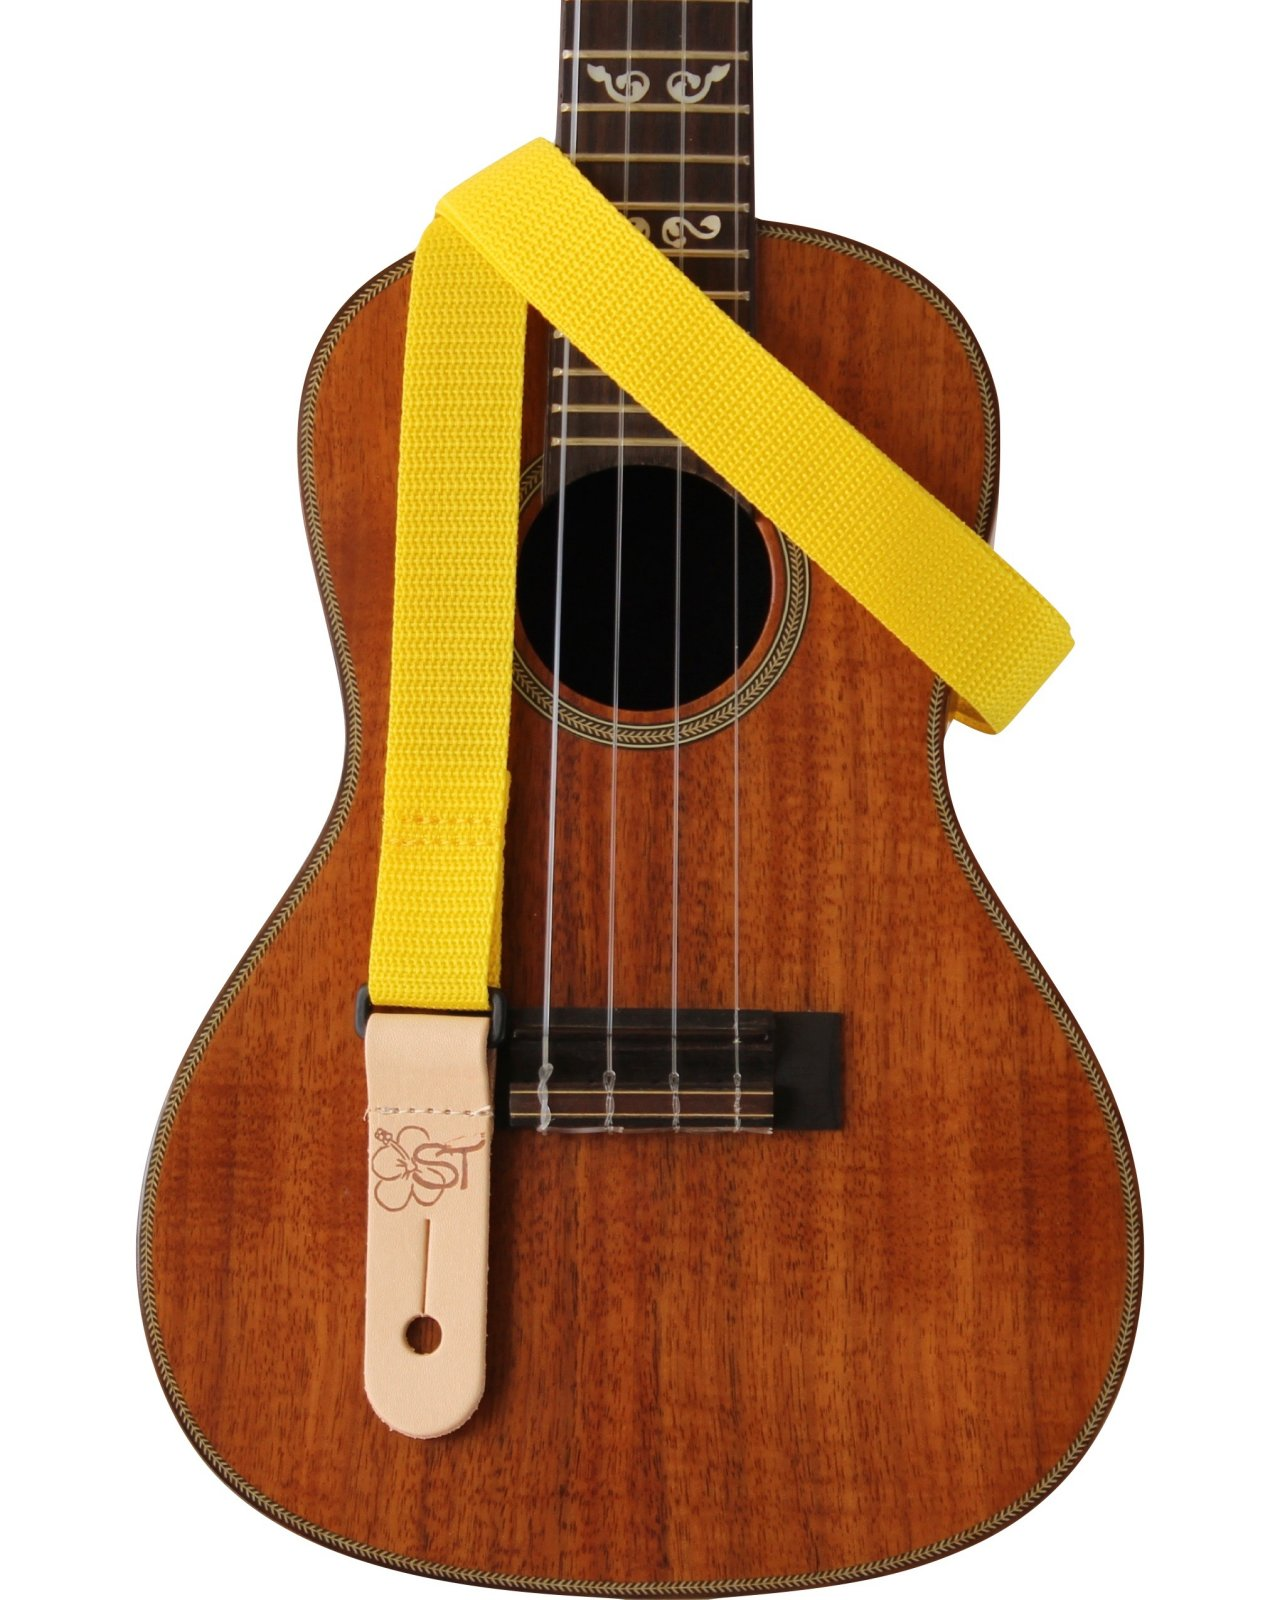 Sherrin's Threads 1 Poly Kids Ukulele Strap - Yellow